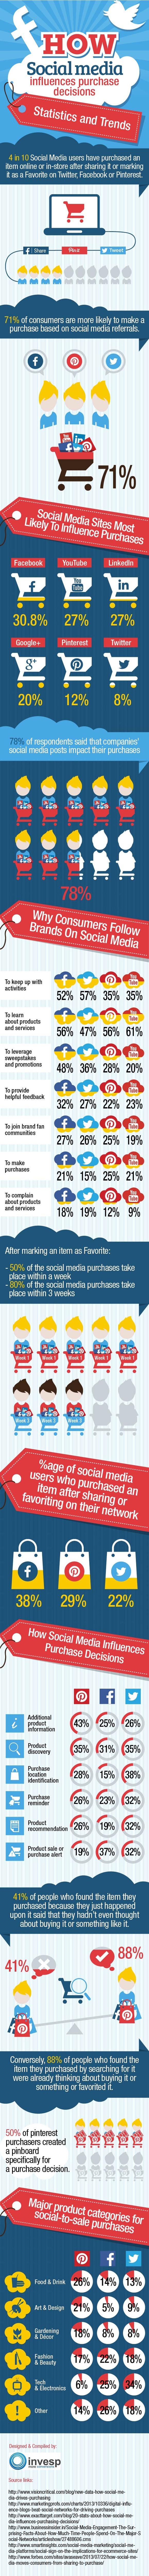 PINTEREST MARKETING - Long Look for the Weekend: How #socialmedia influences purchase decisions #digitalmarketing #onlinemarketing - Bon Weekend!